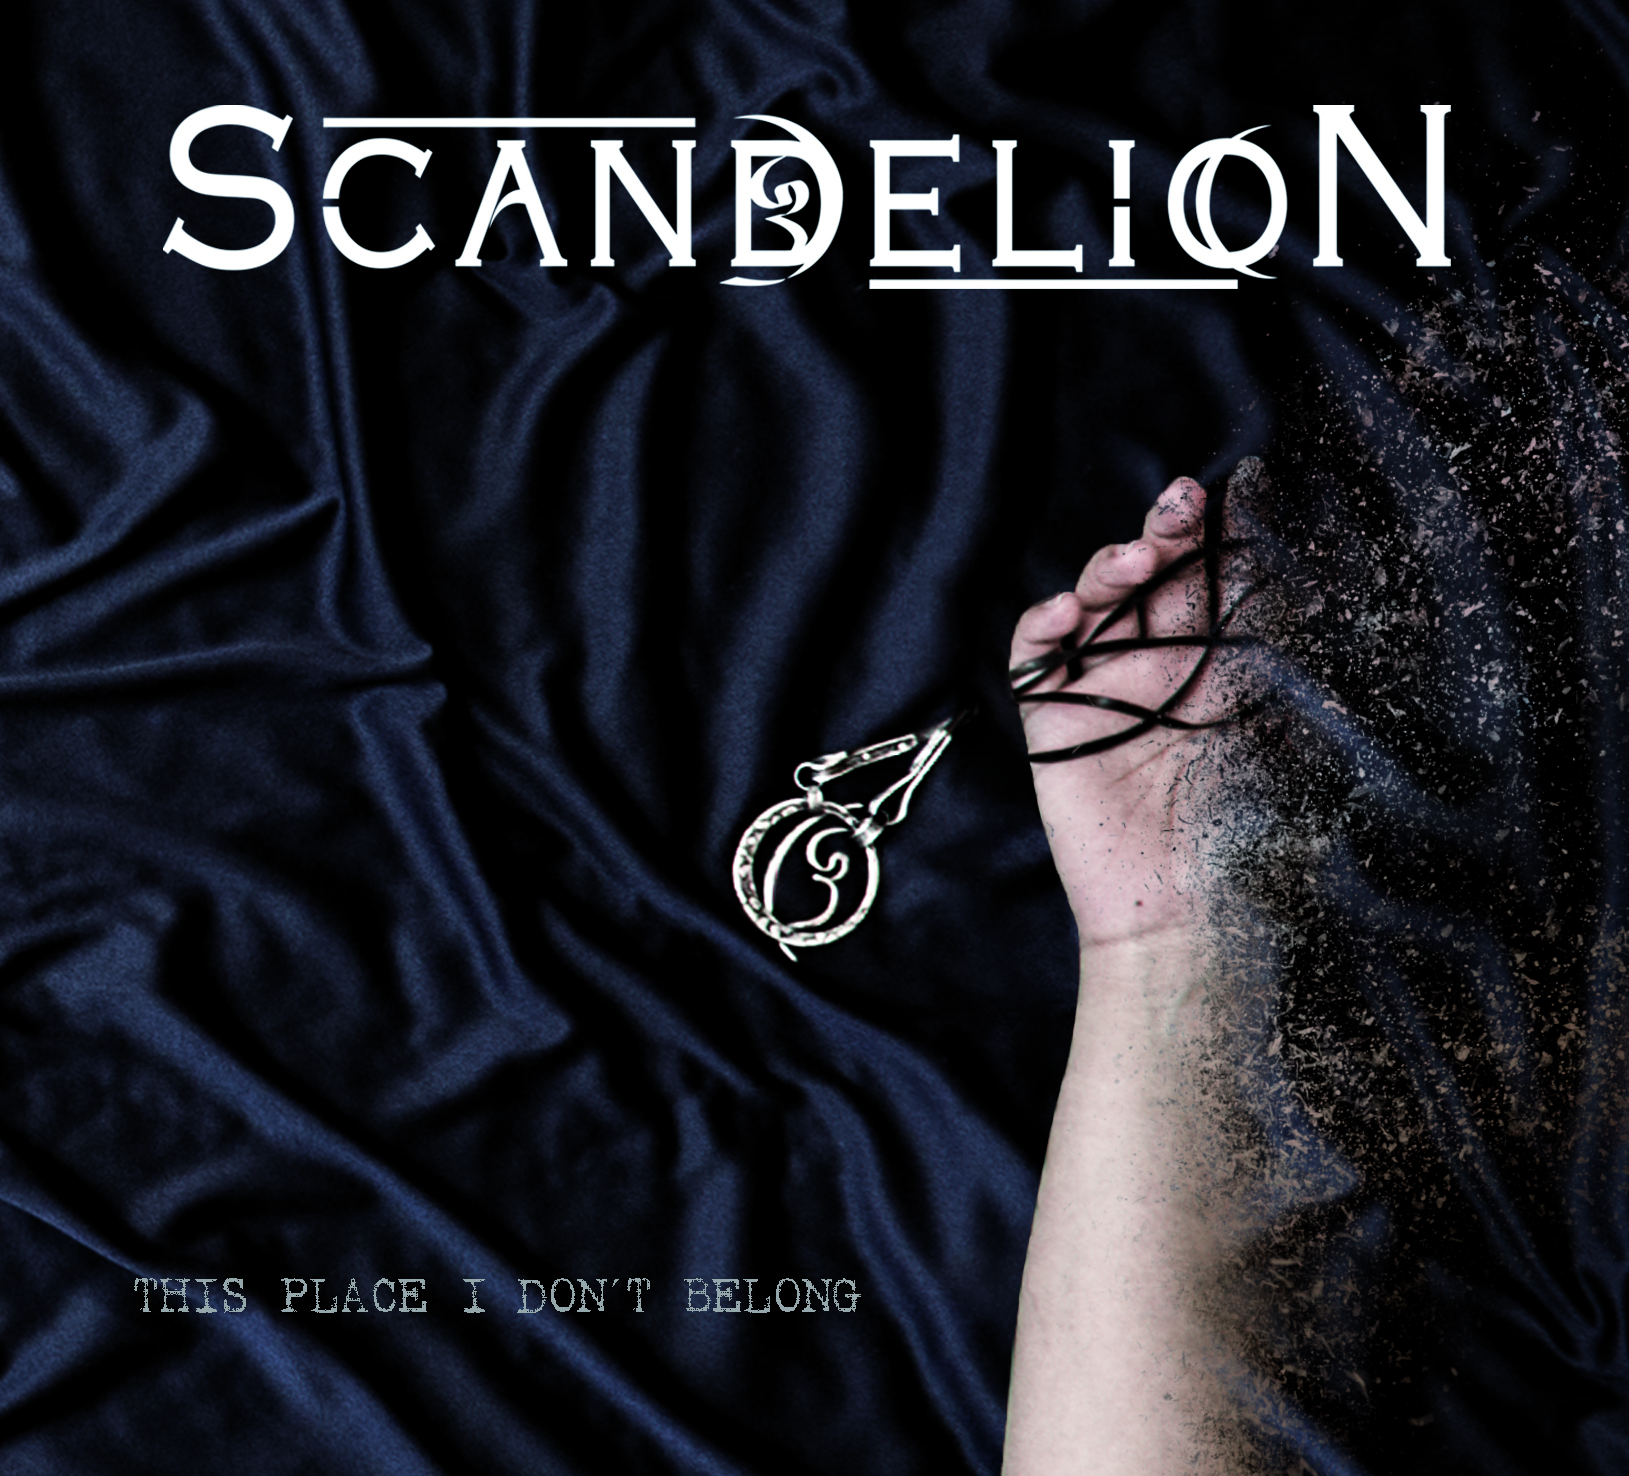 Scandelion - This Place I Don't Belong